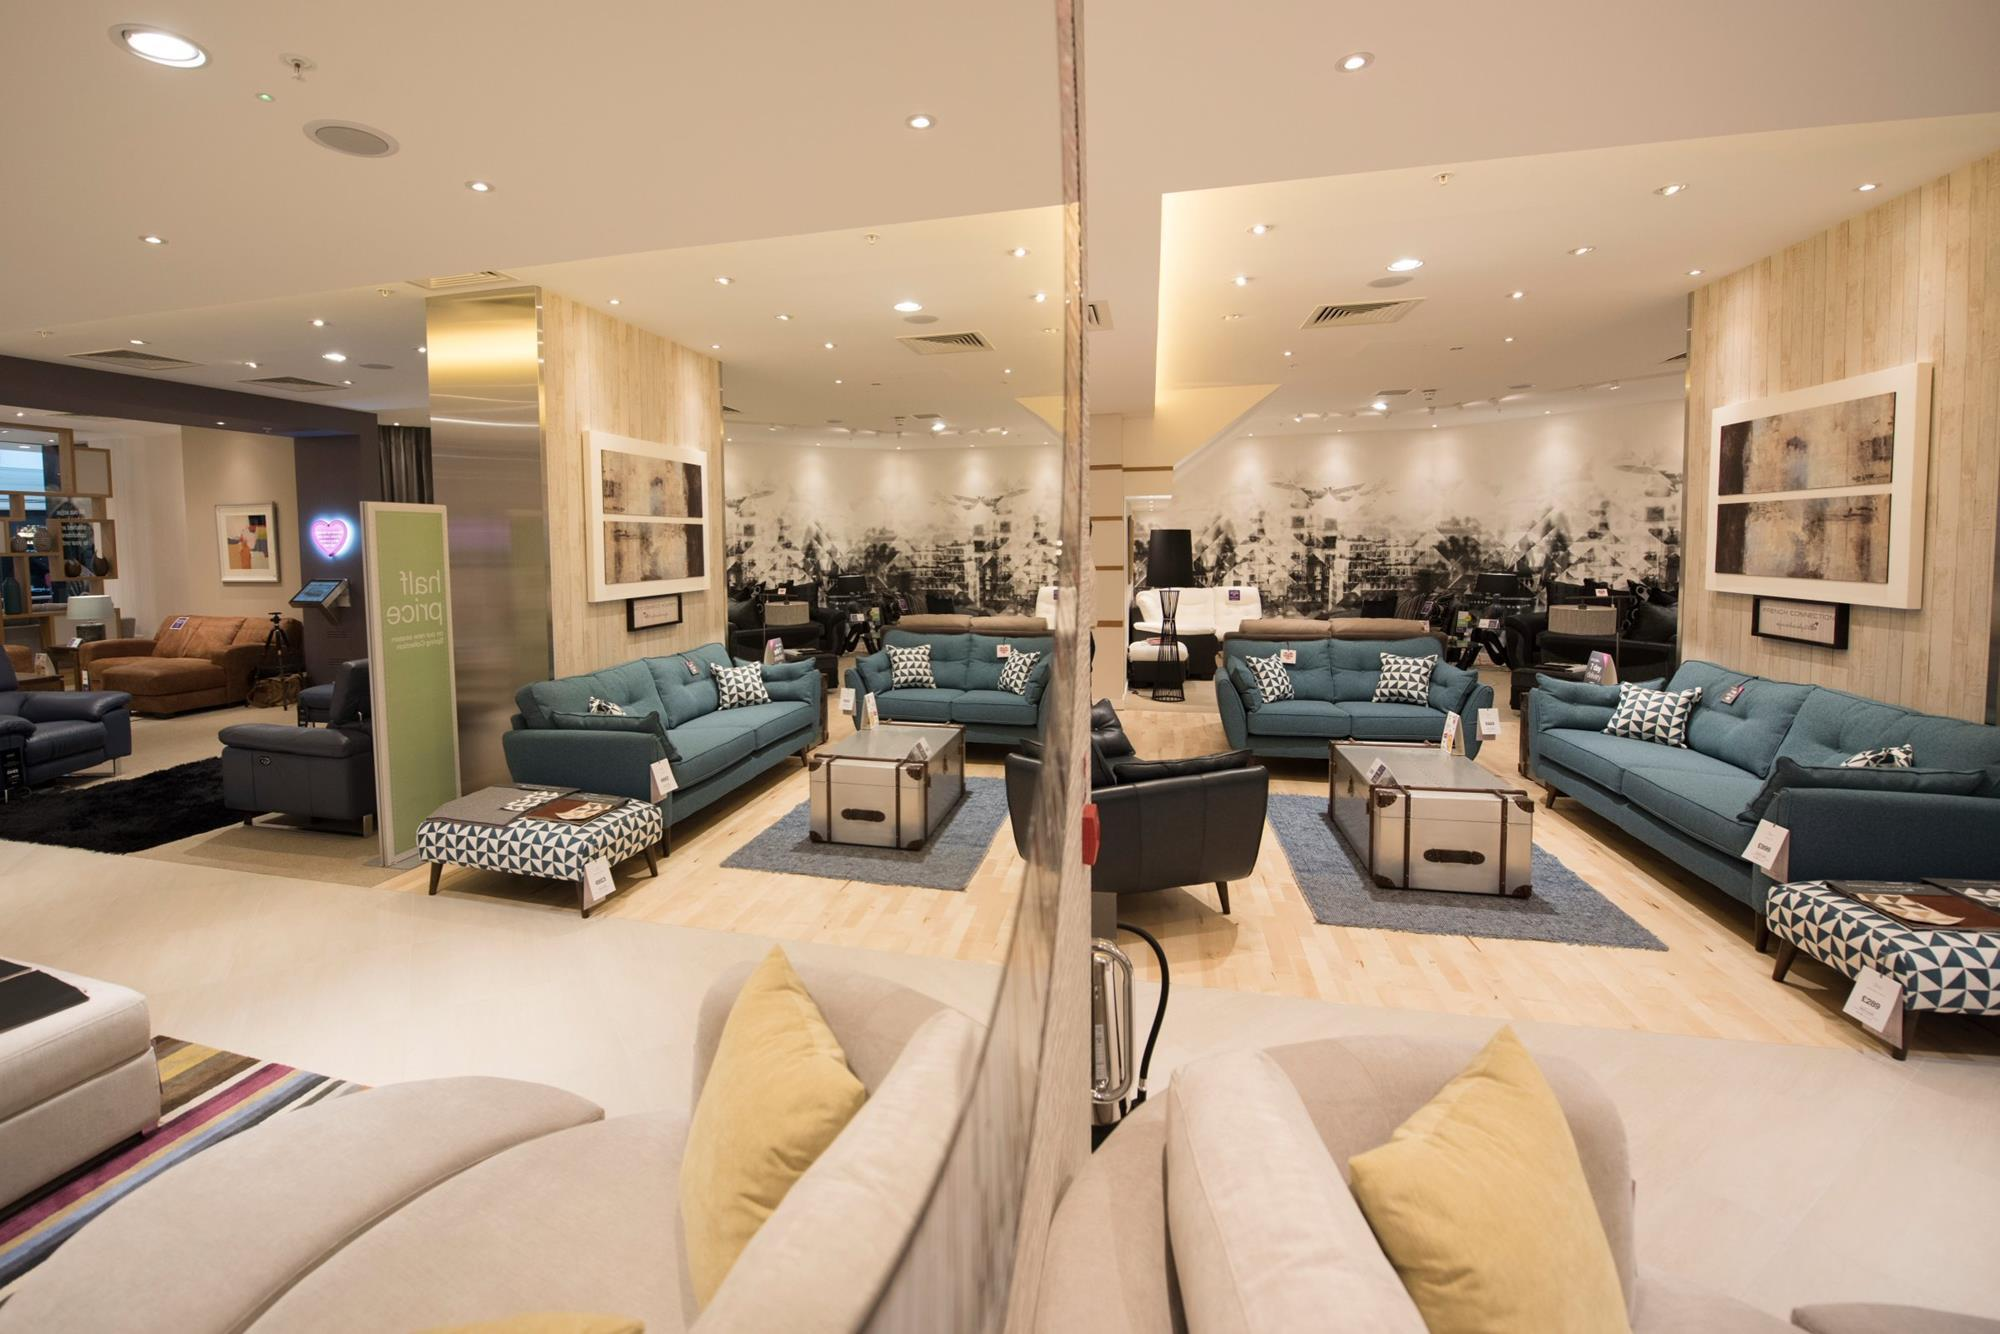 Store gallery DFS opens its second small format store in Bromley